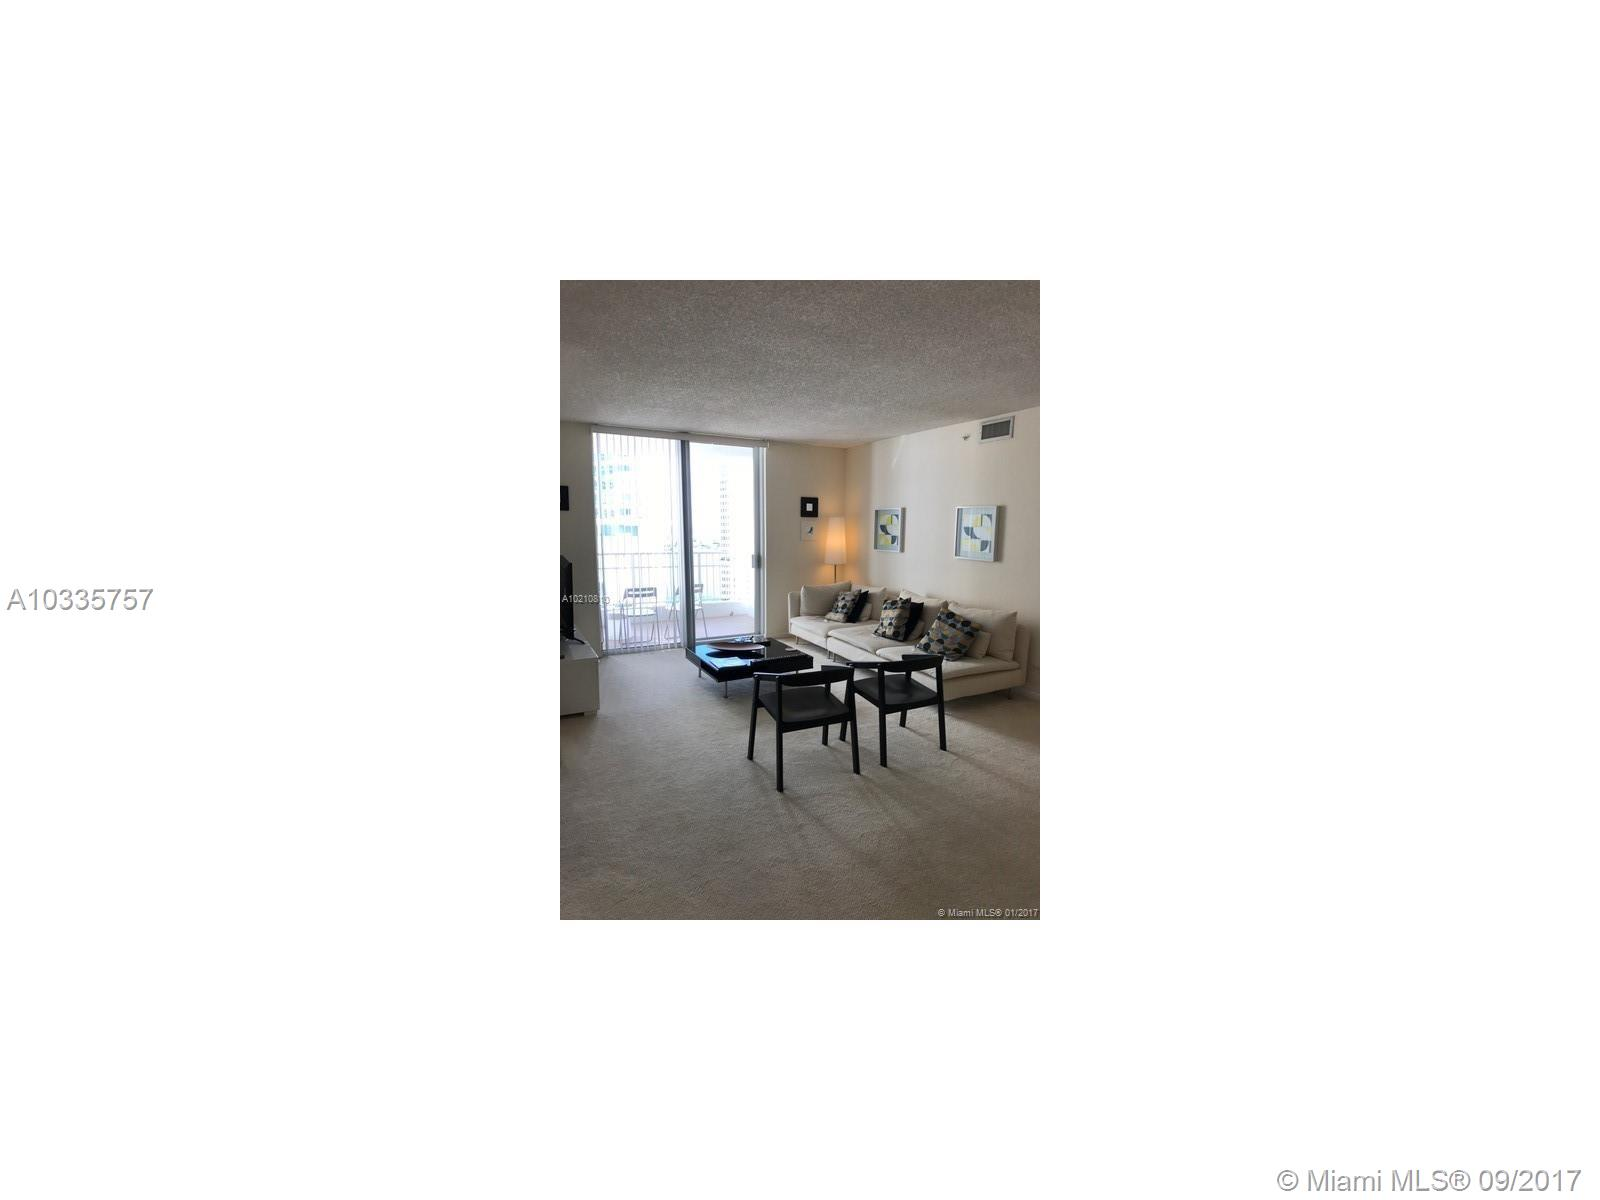 701 Brickell Key Blvd # 2005, Miami, FL 33131